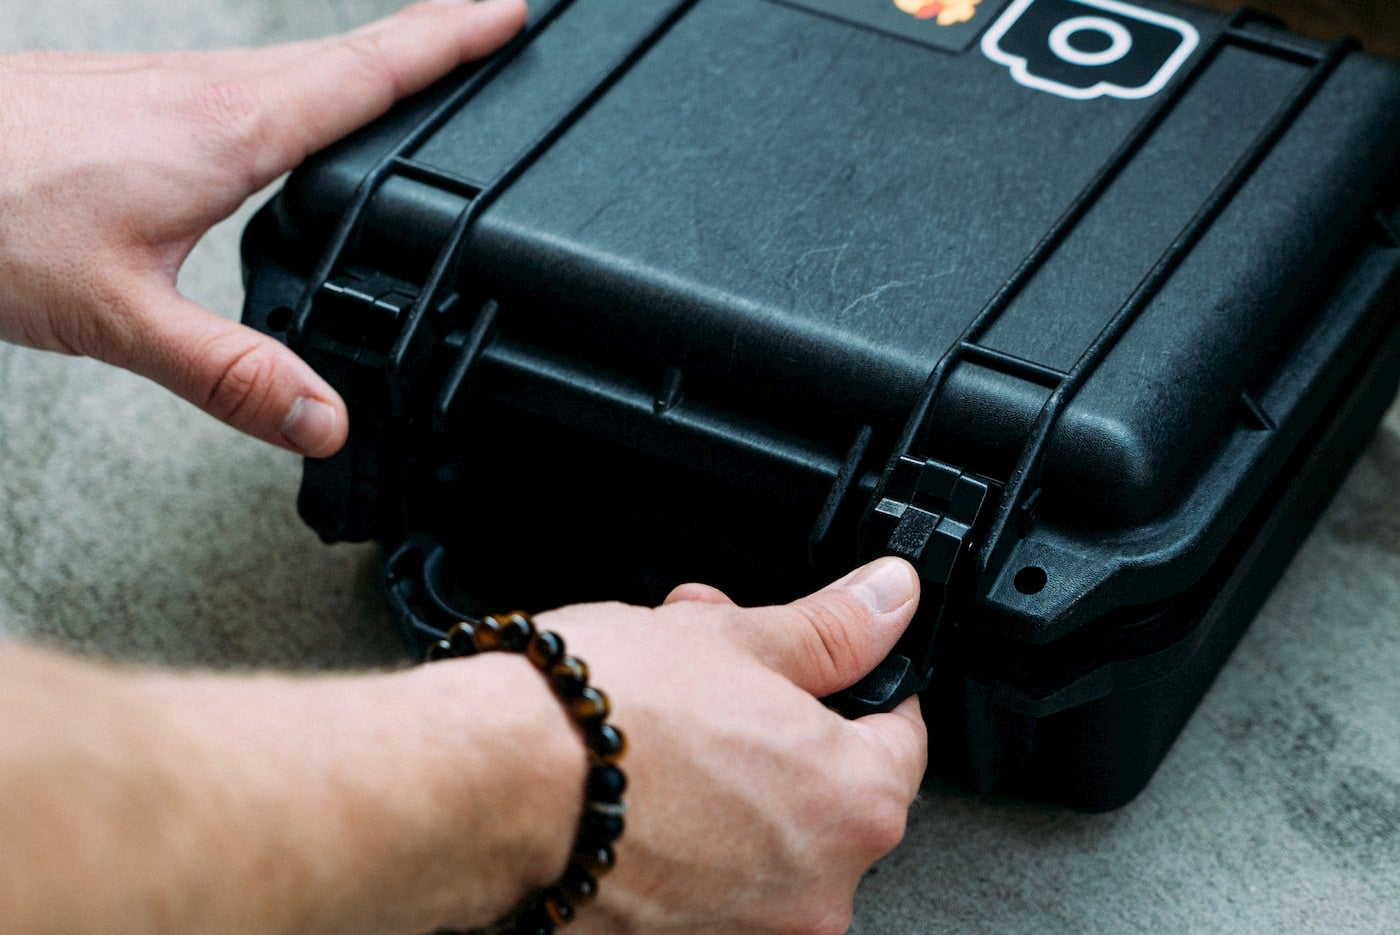 Person opening a small pelican case.